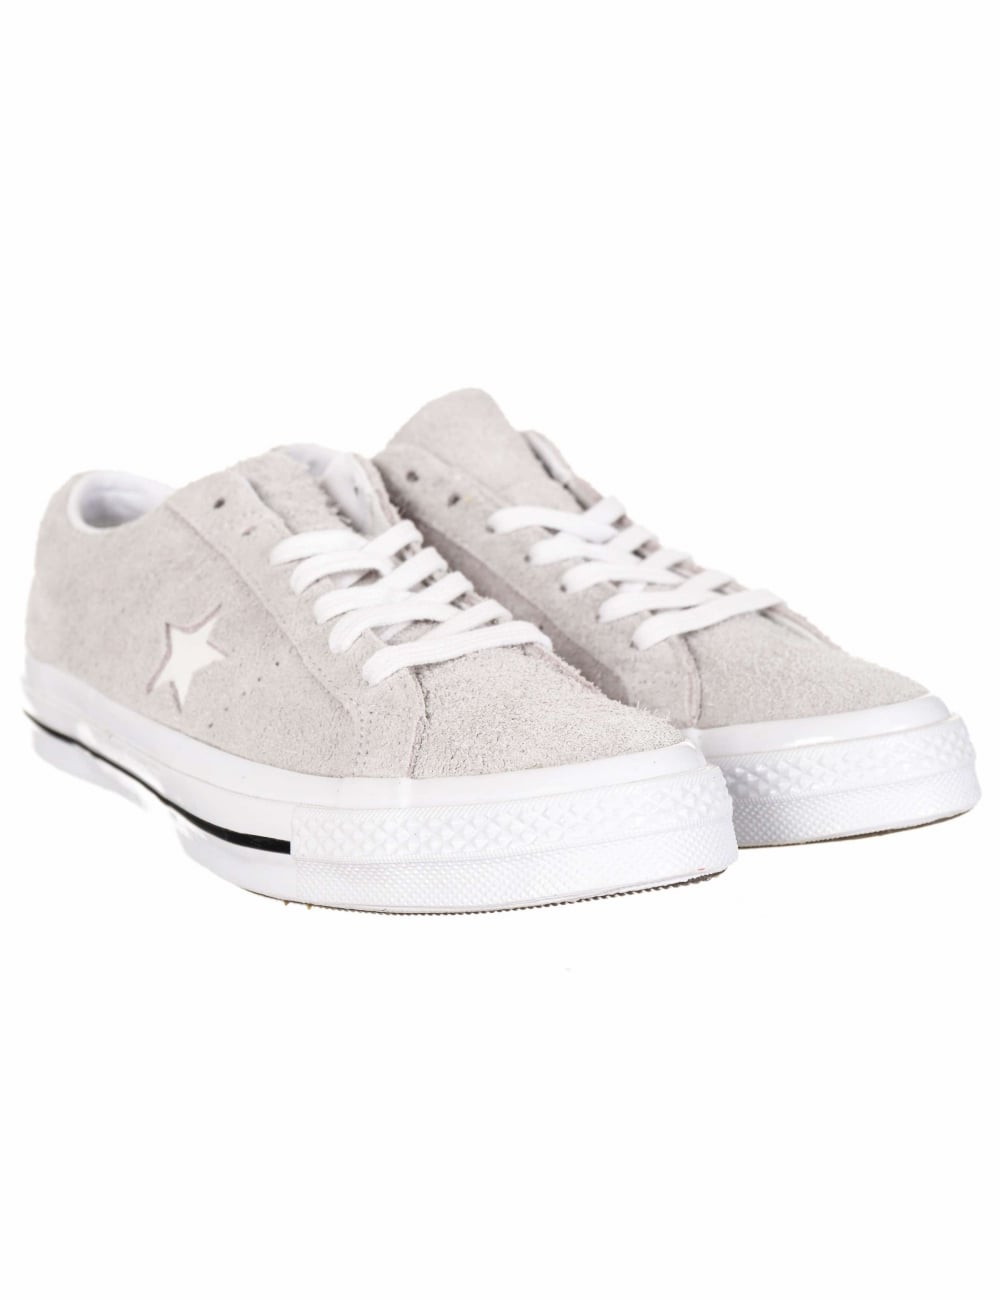 2357c1e6f41 Converse One Star Ox Premium Suede Trainers - Ash Grey White ...